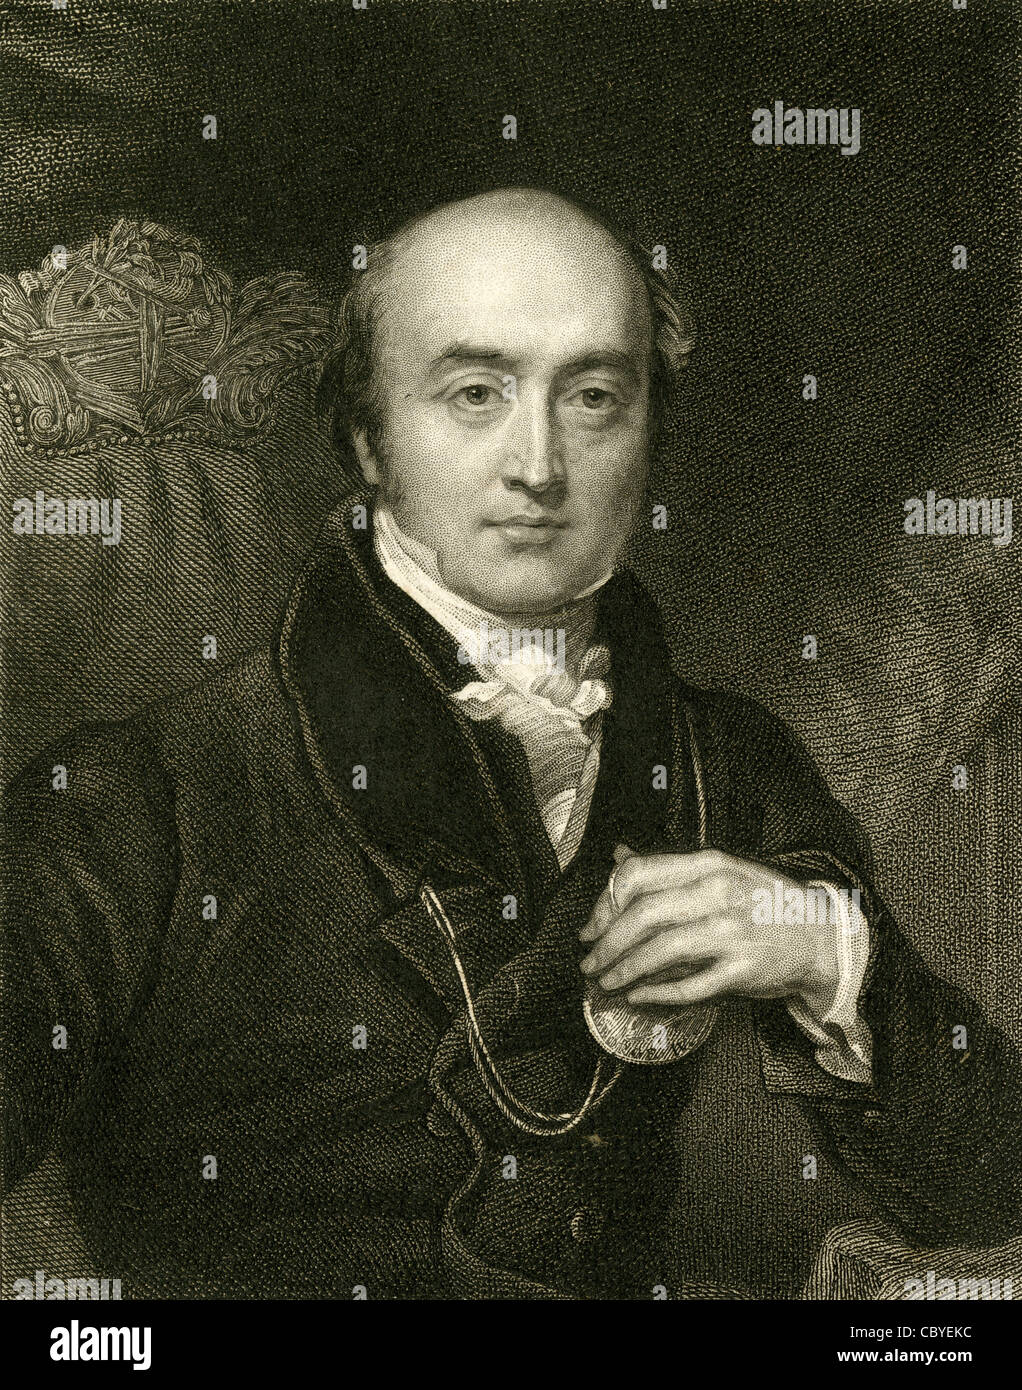 Circa 1830s engraving, Sir Thomas Lawrence. - Stock Image